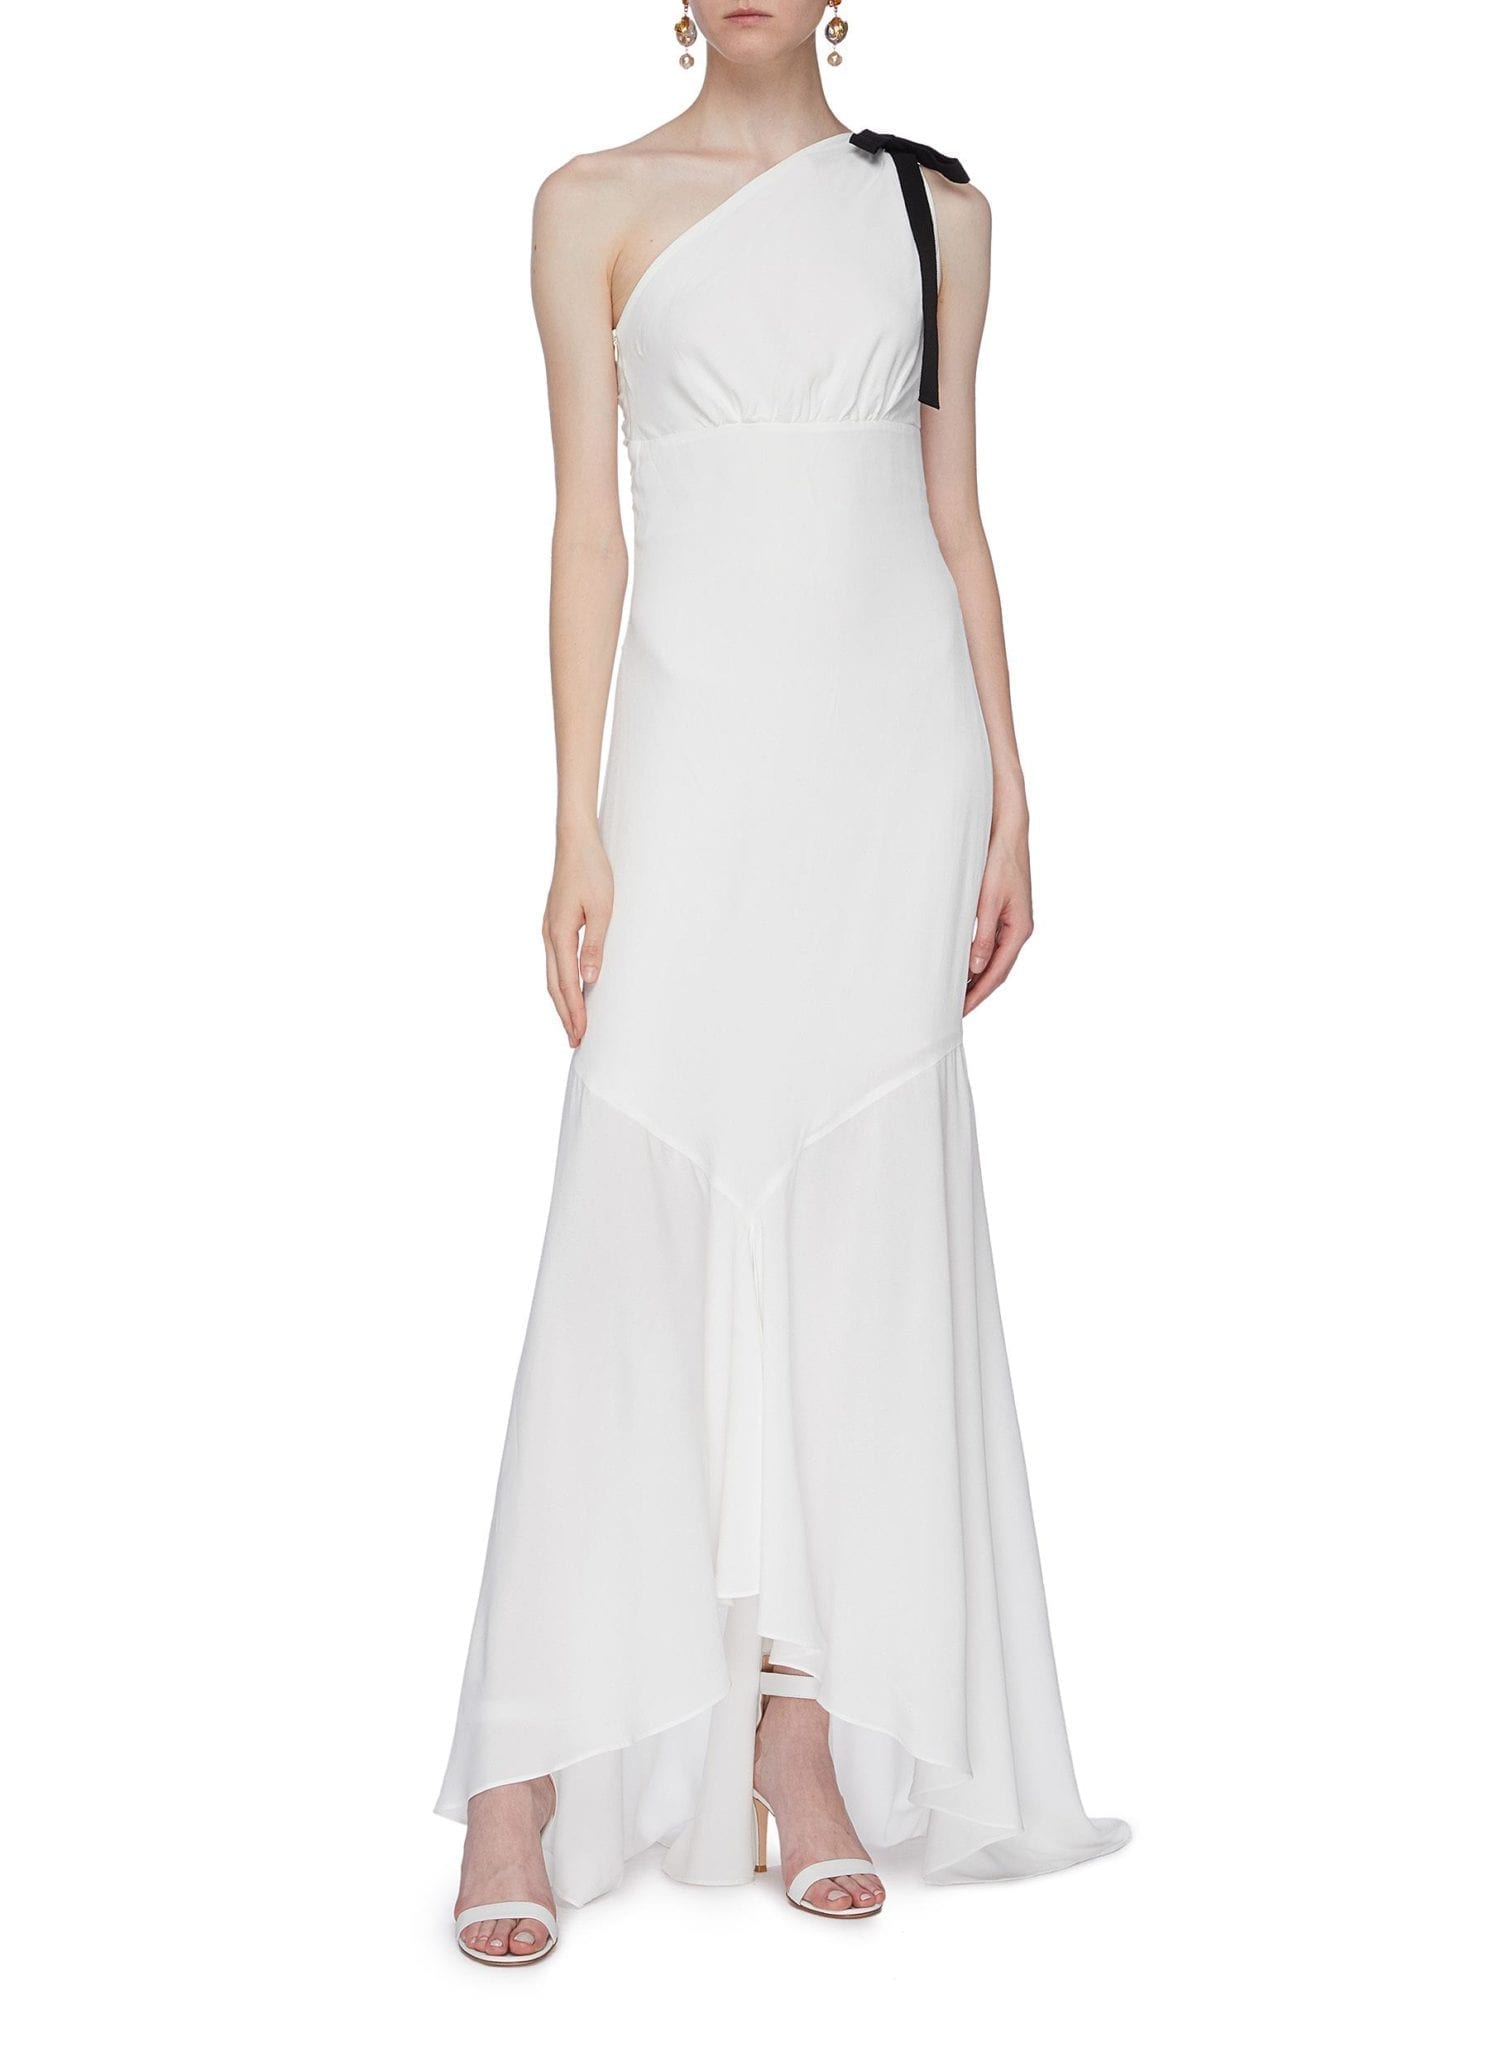 SILVIA TCHERASSI 'Asha' Contrast Sash Tie One Shoulder High-low Dress